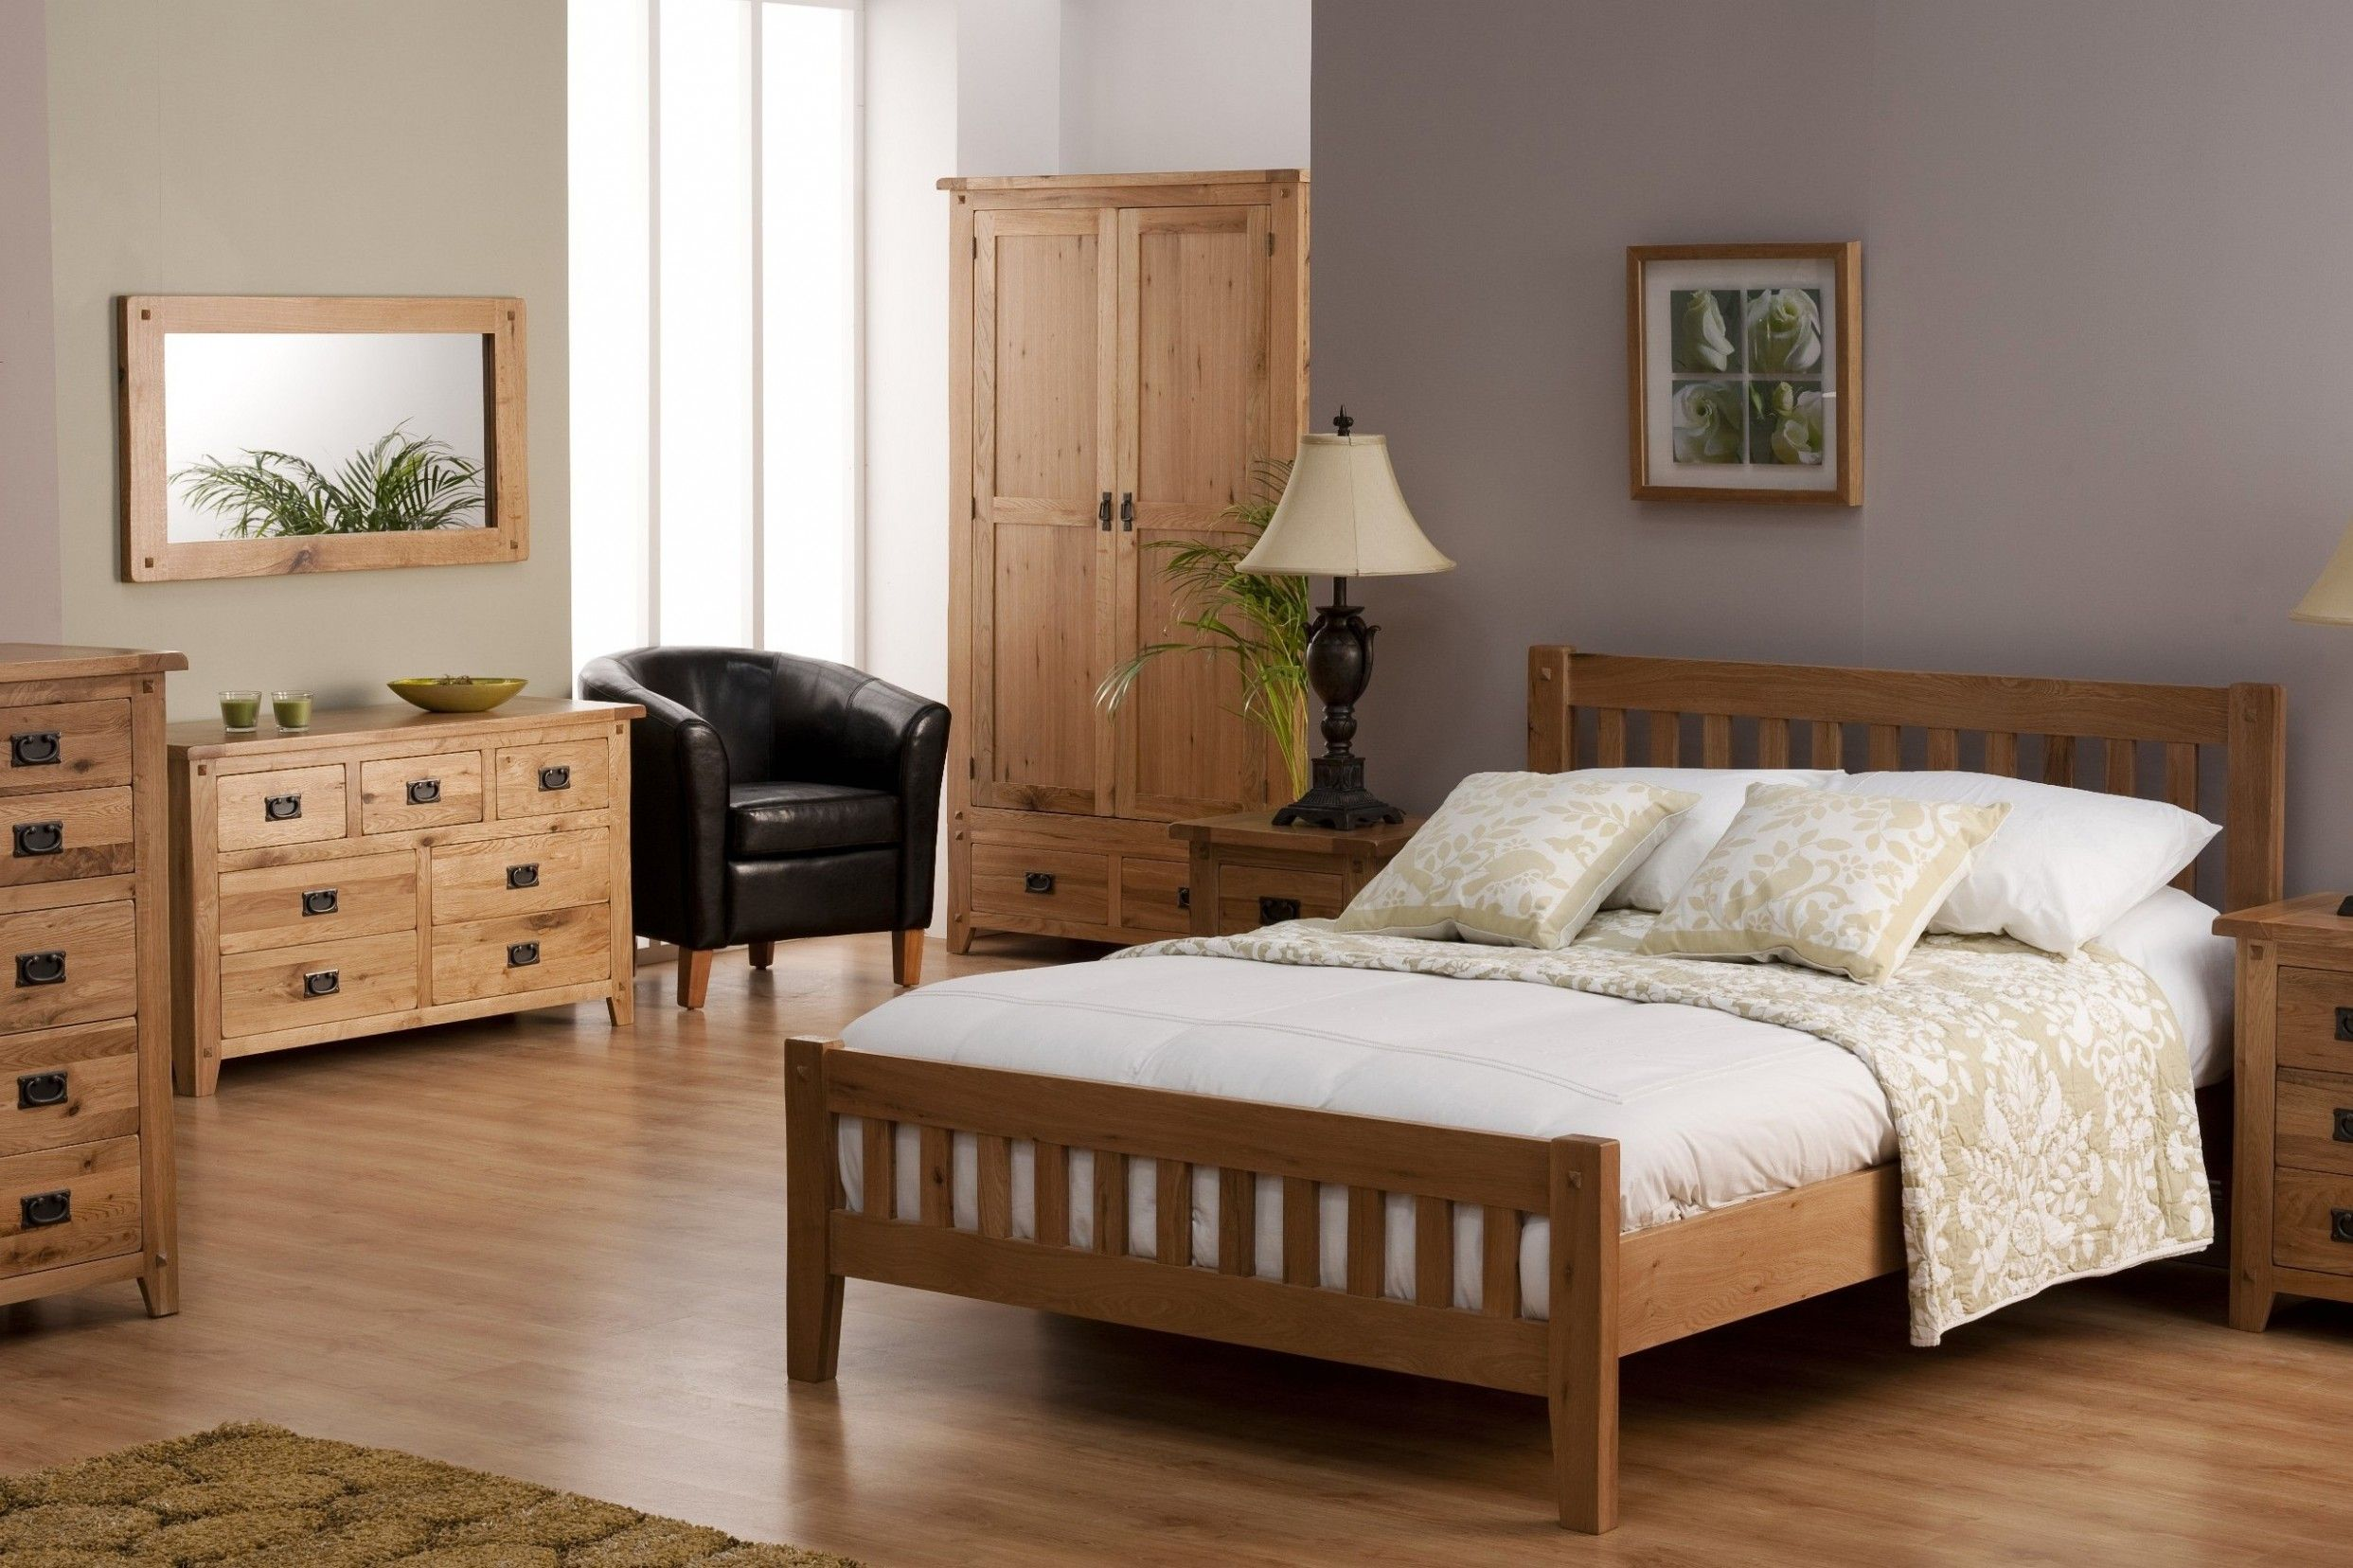 Bedroom Decorating Ideas Oak Furniture